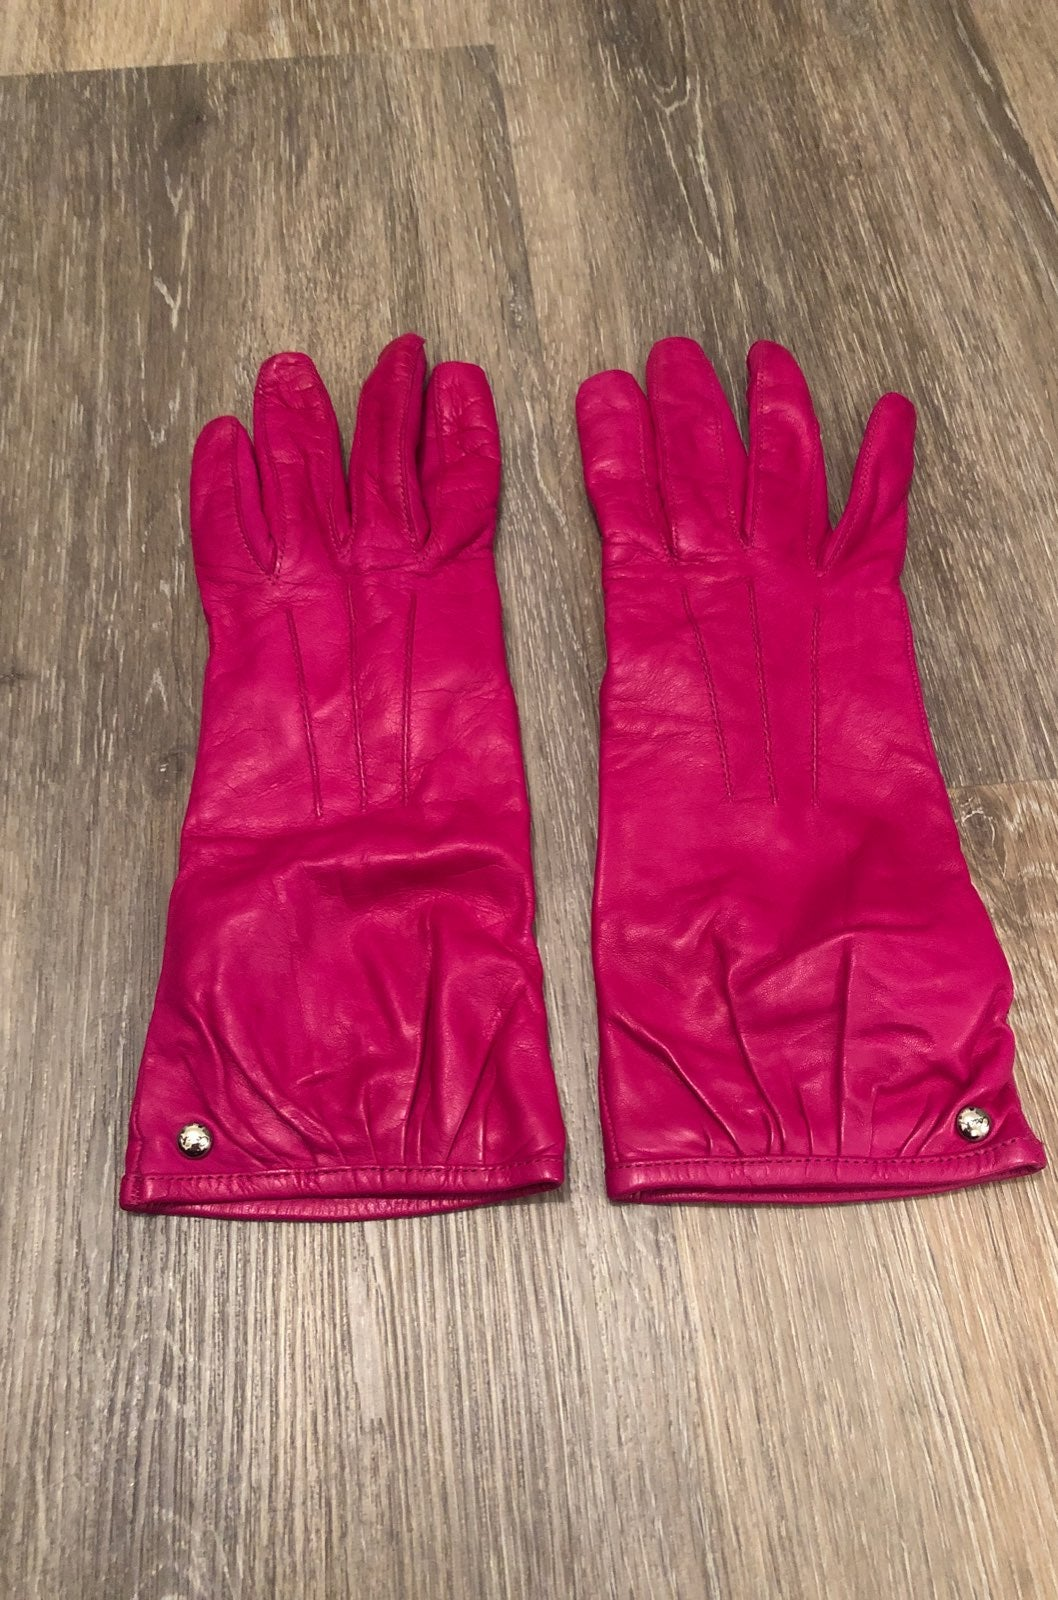 Coach Pink Leather Gloves